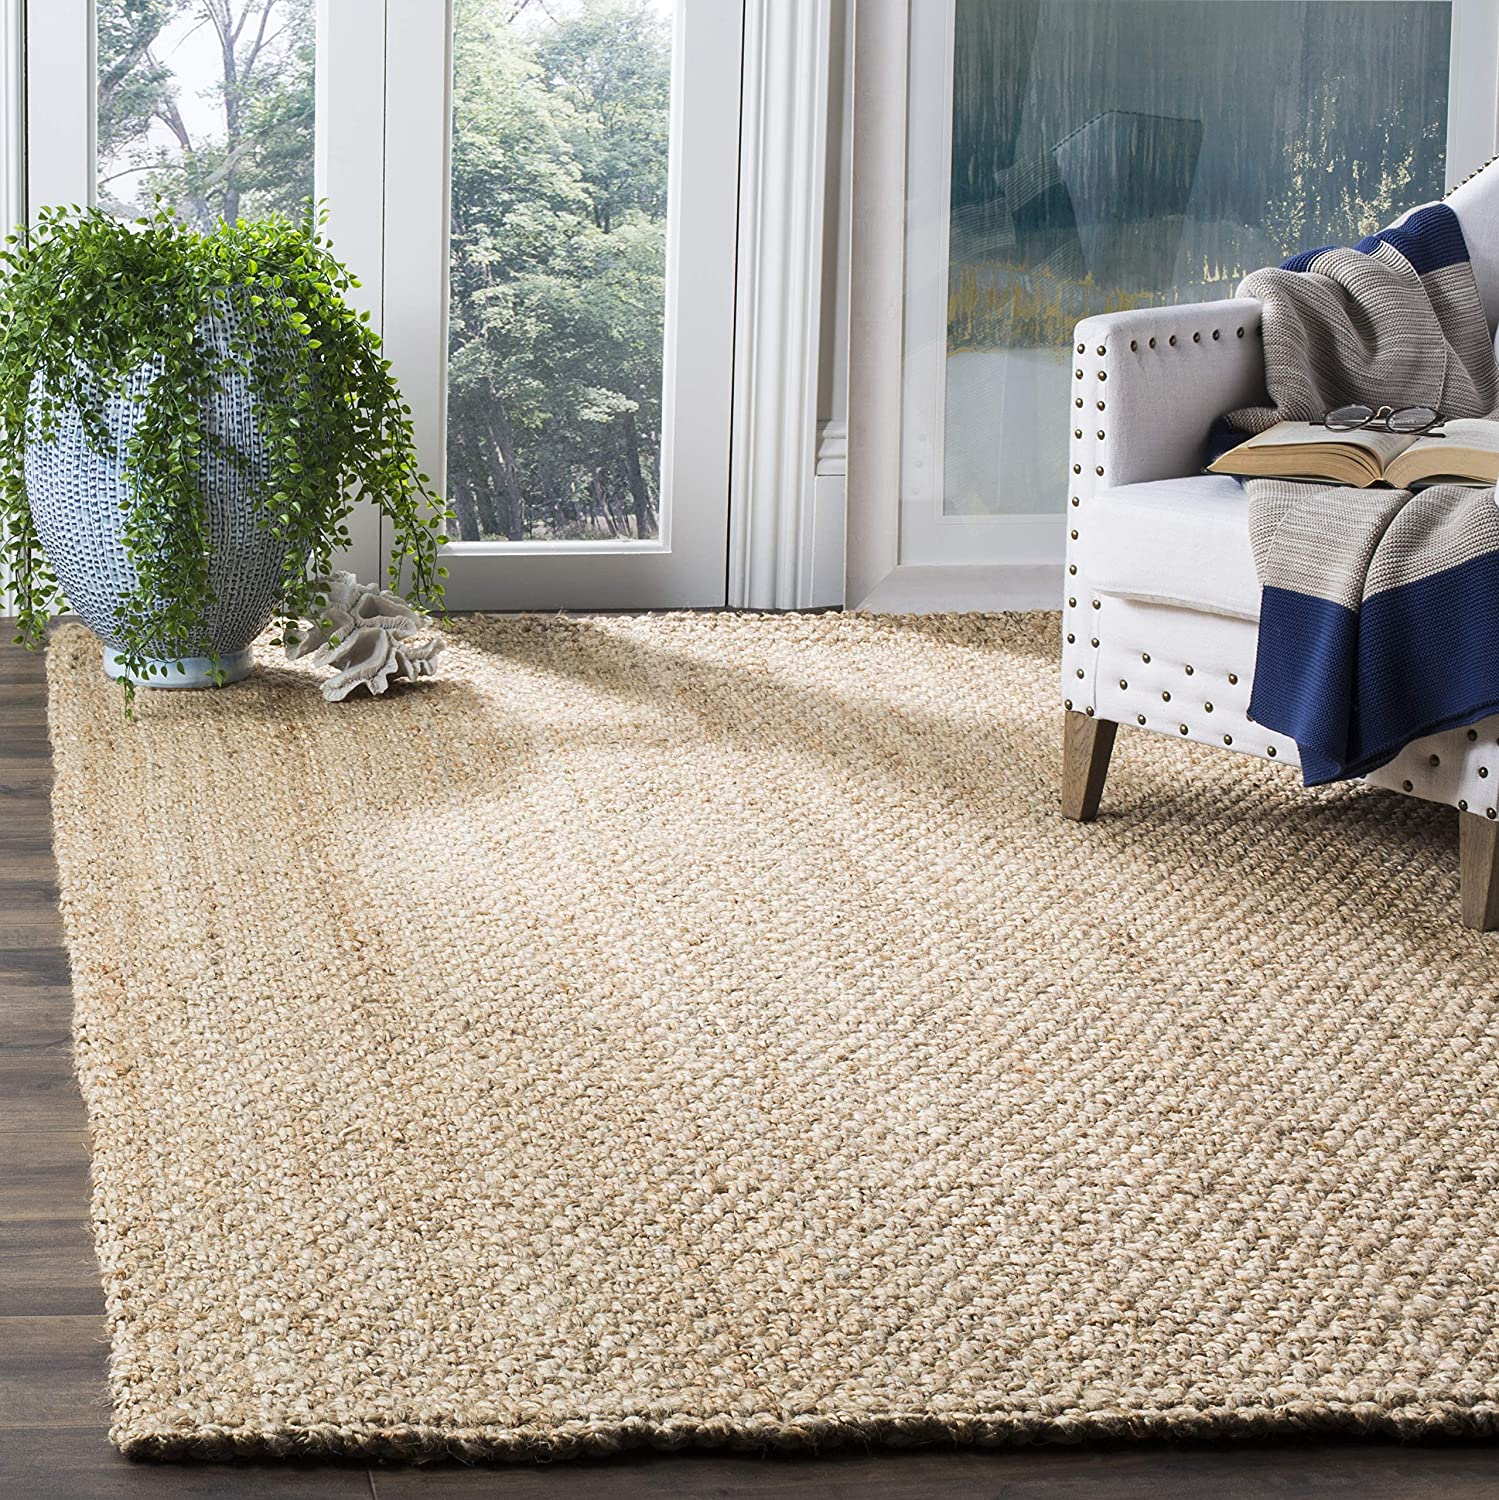 Amazon Com Safavieh Natural Fiber Collection Nf401a Handmade Basketweave Jute Area Rug 6 X 6 Square Natural Furniture Decor